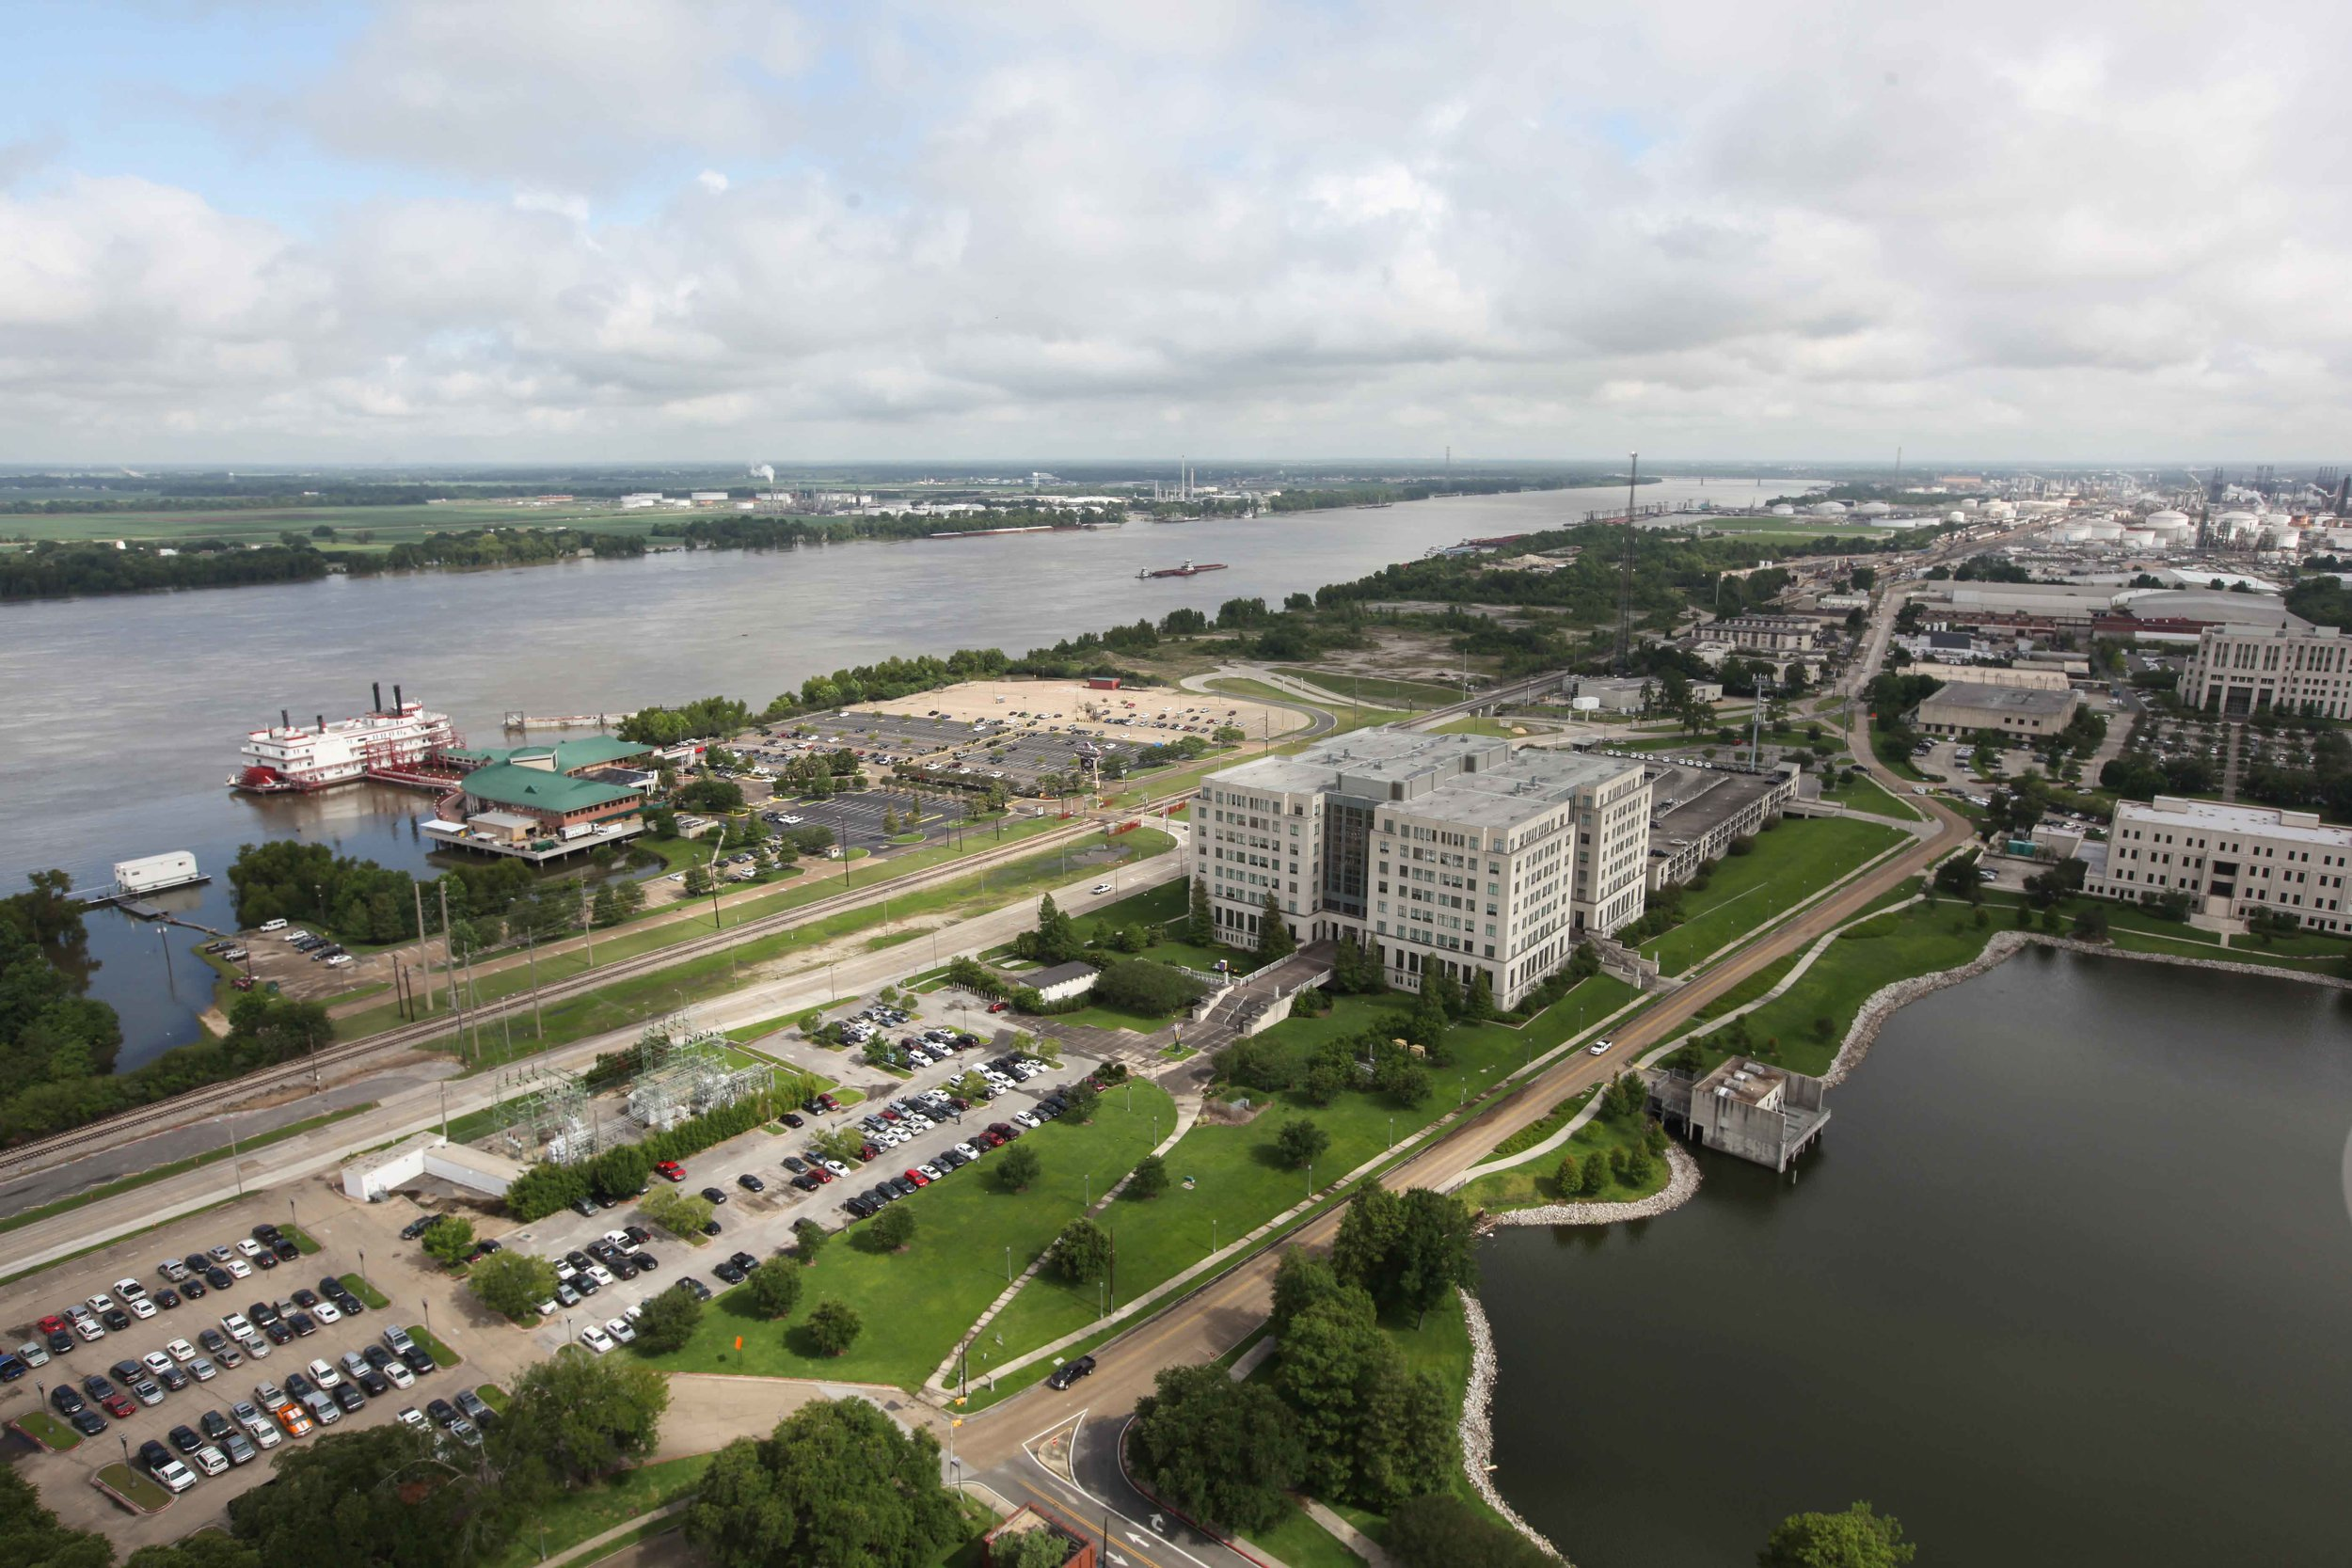 The Mississippi from the observation deck at the Louisiana State Capitol.